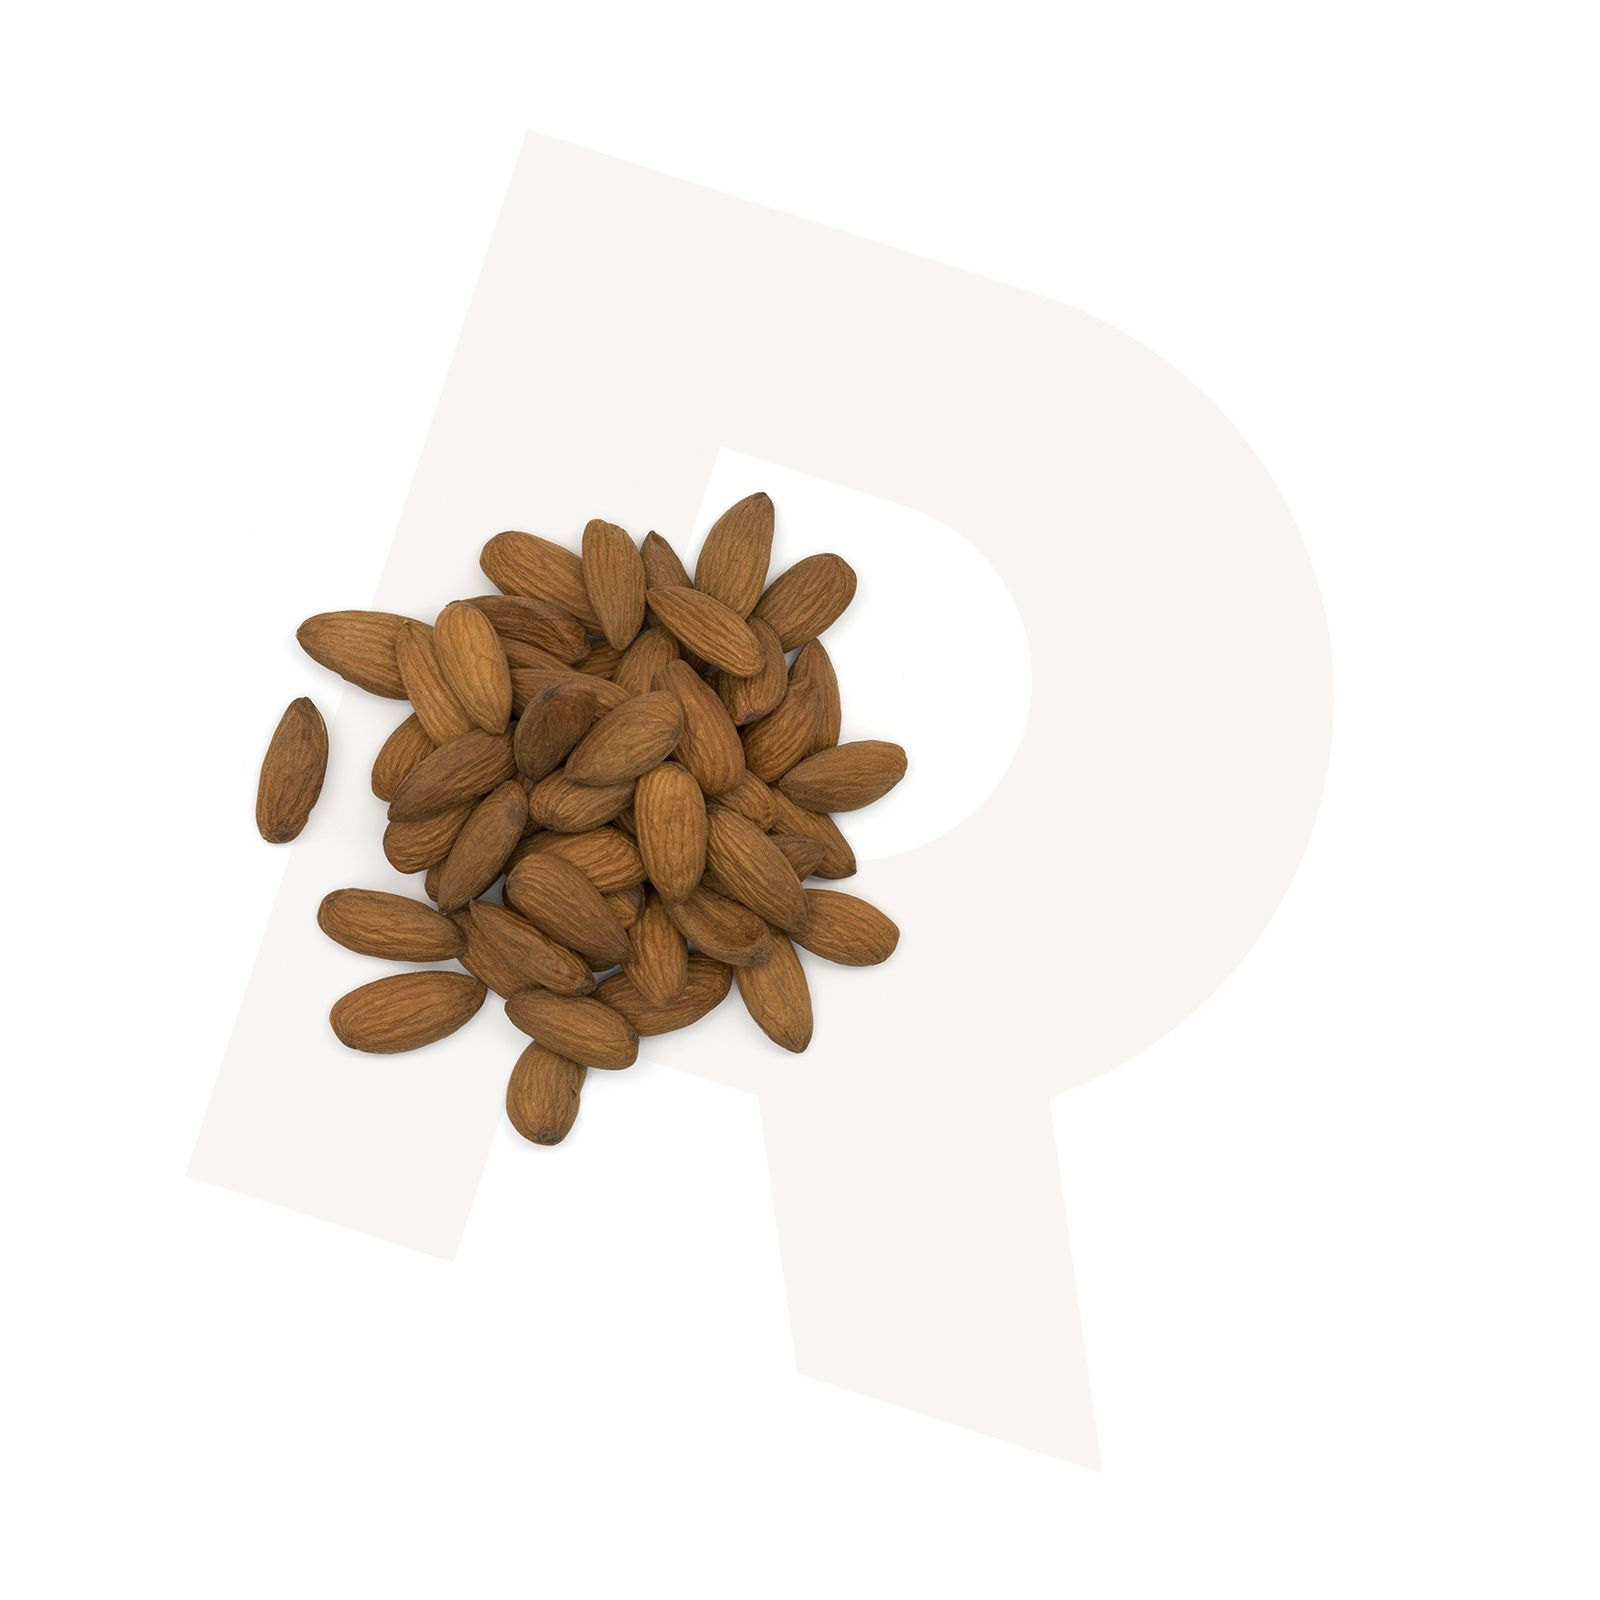 Nuts_Brown-almonds